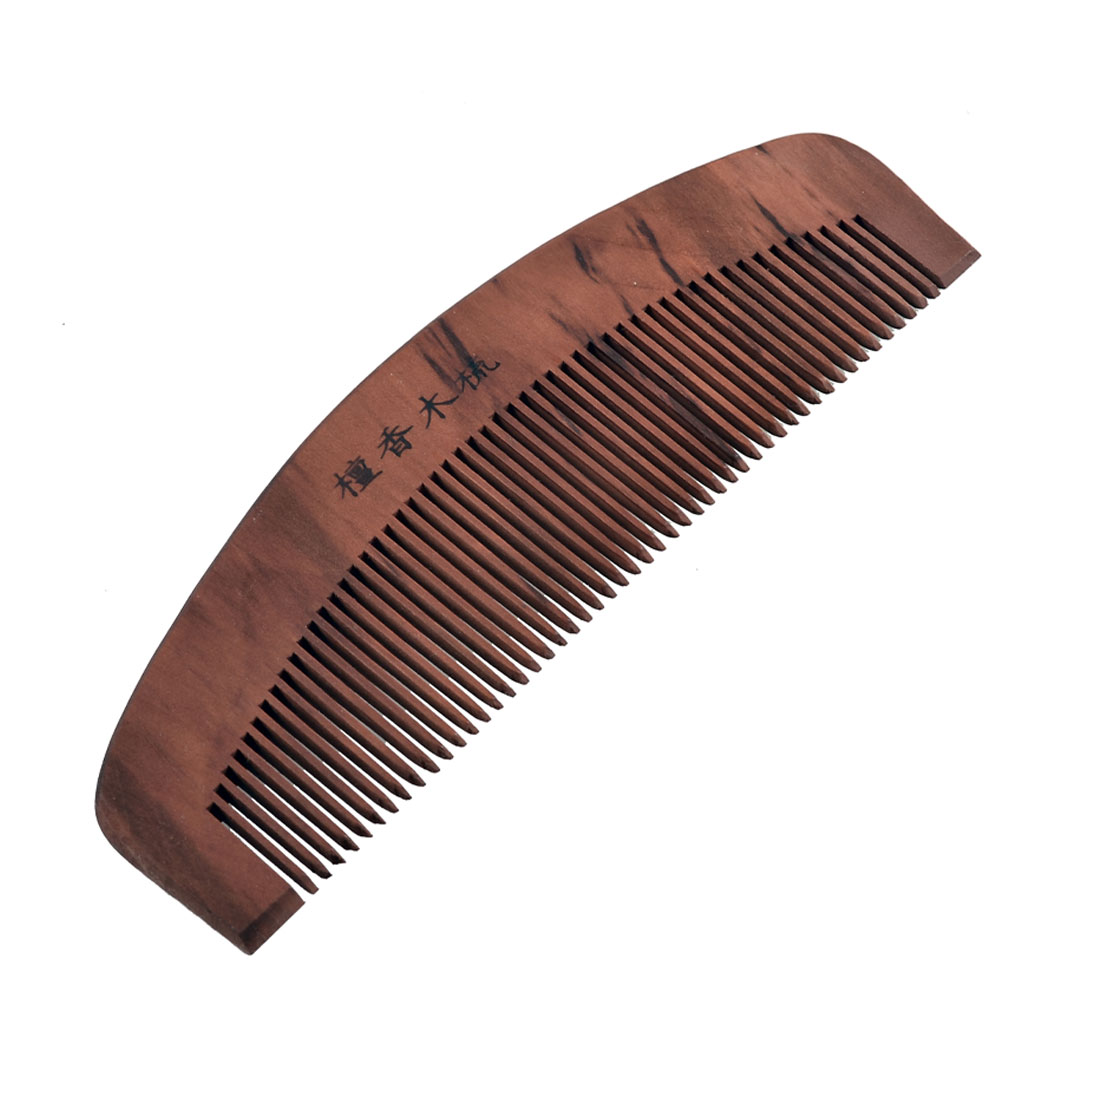 "Portable Rosewood Hair Care Sandal Wood Fine Teeth Comb 6"" Long"